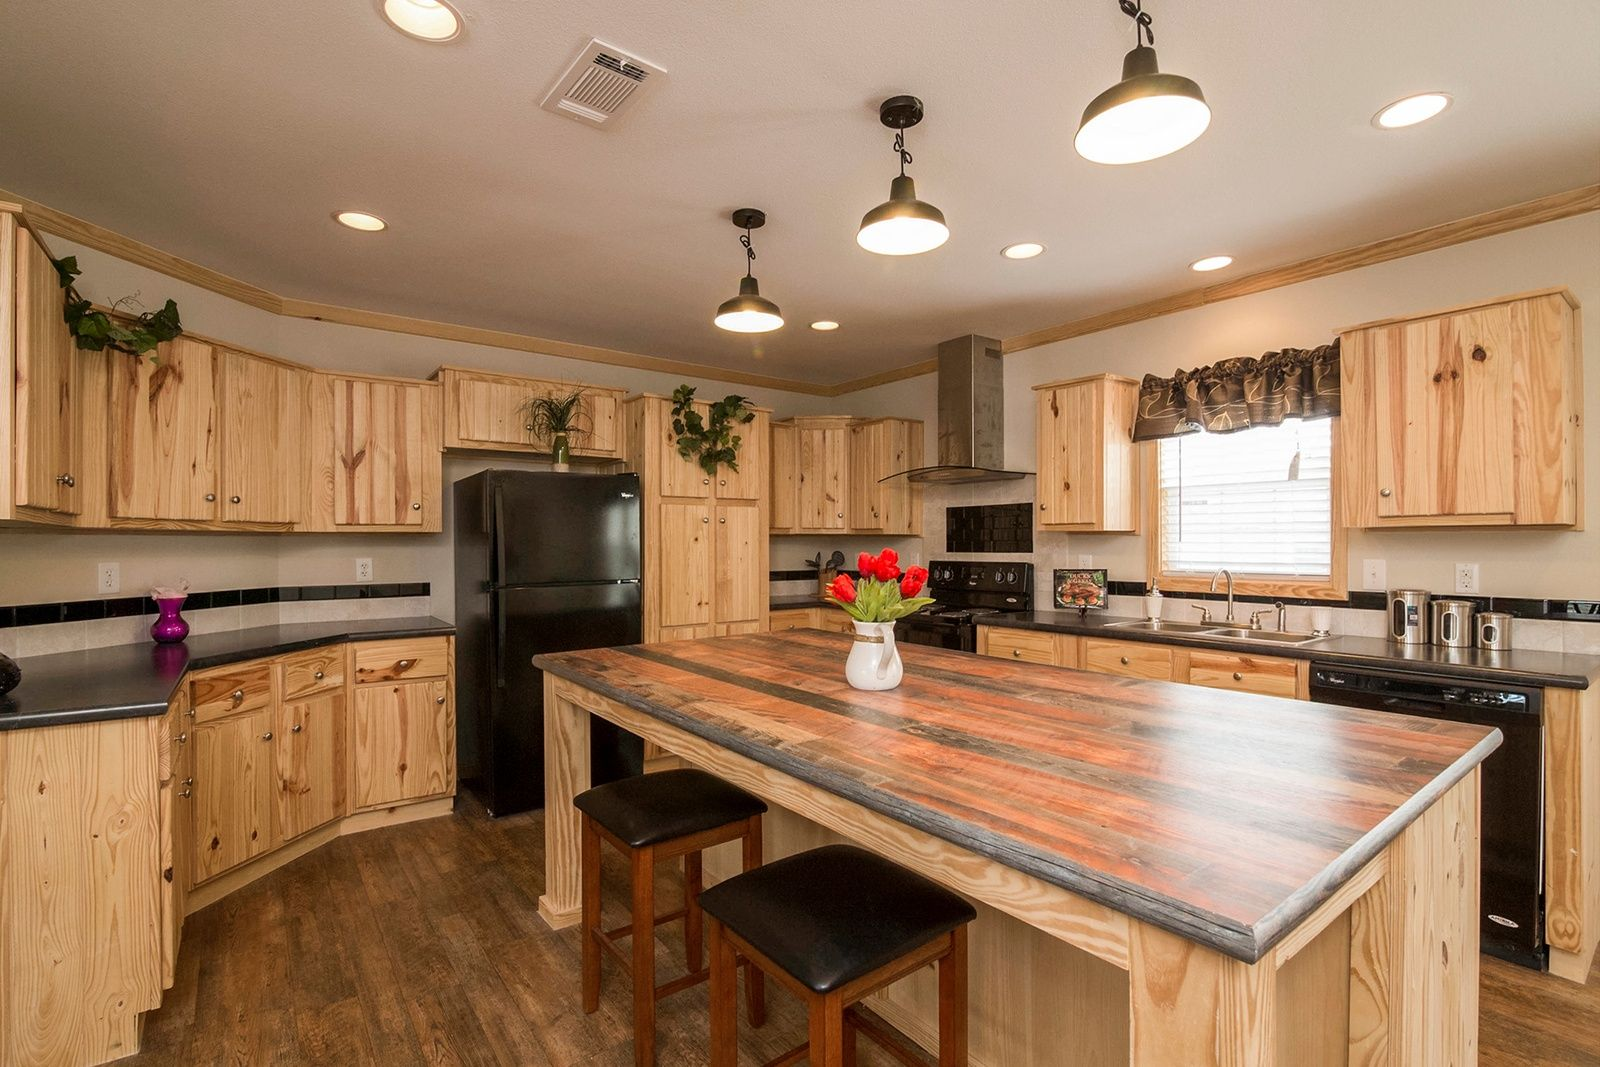 Rustic kitchen with knotty pine kitchen cabinets and wood ...